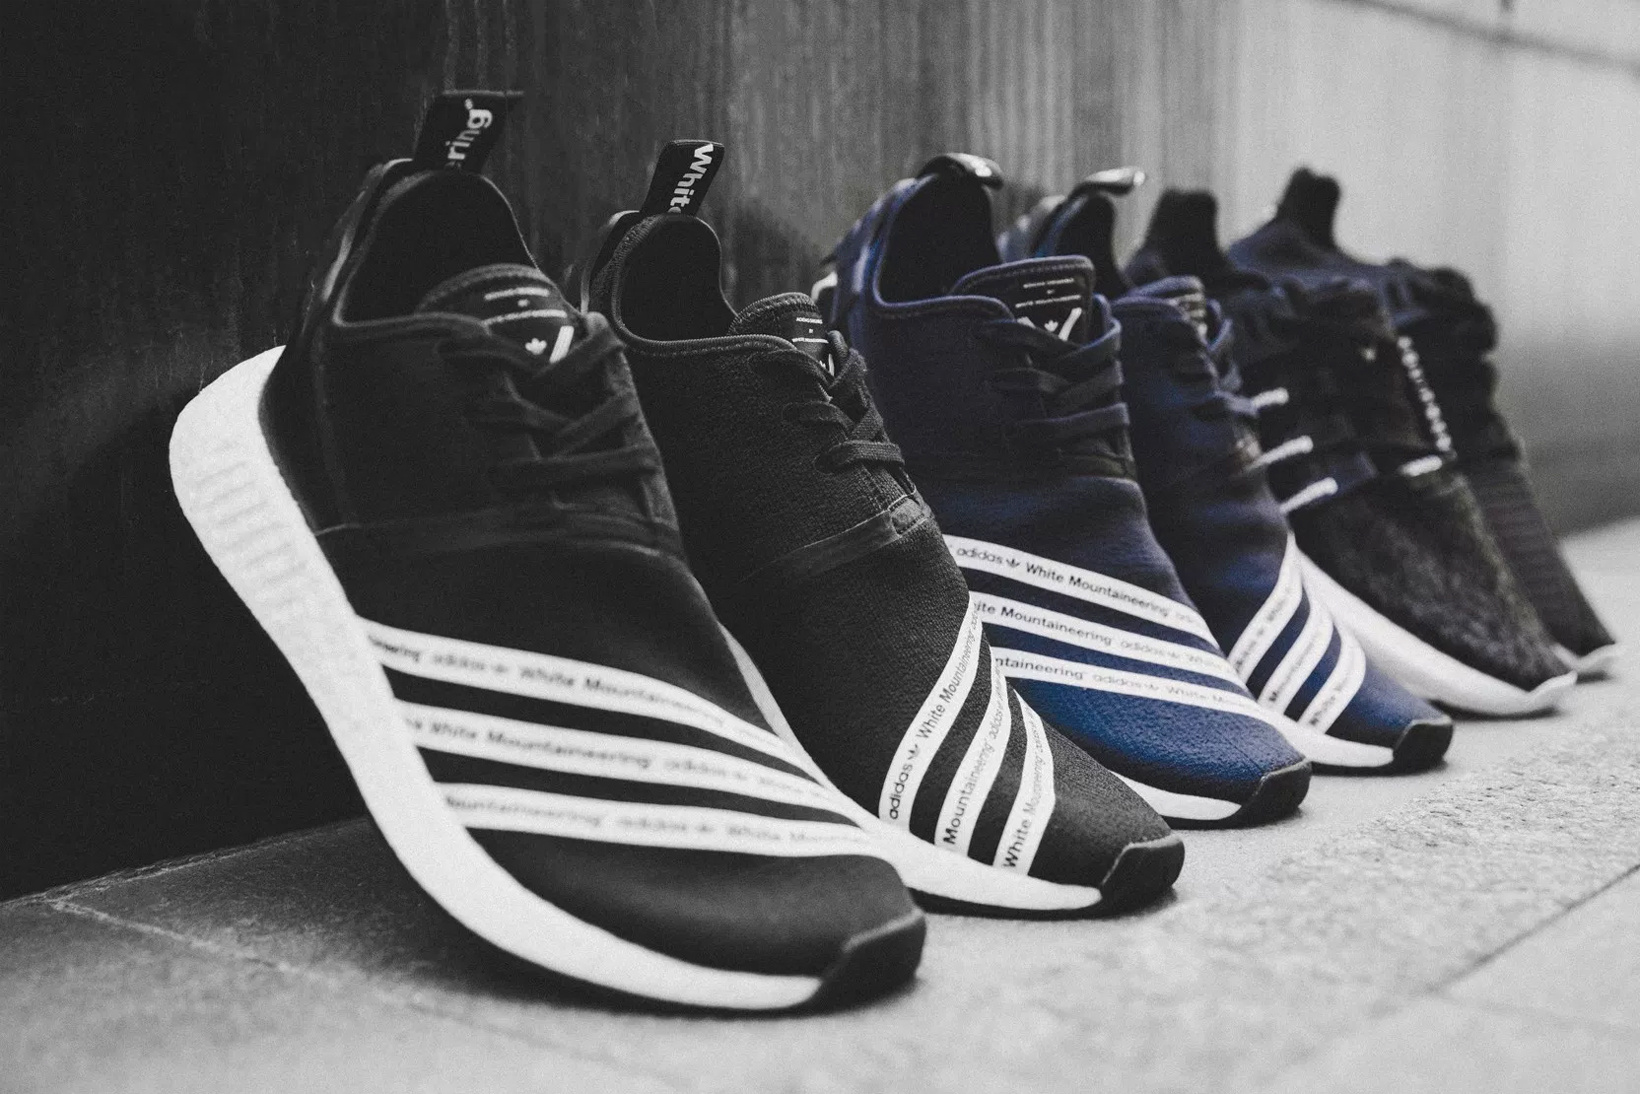 new concept dd1c2 c4a23 Now Available: White Mountaineering x adidas NMD R2 ...